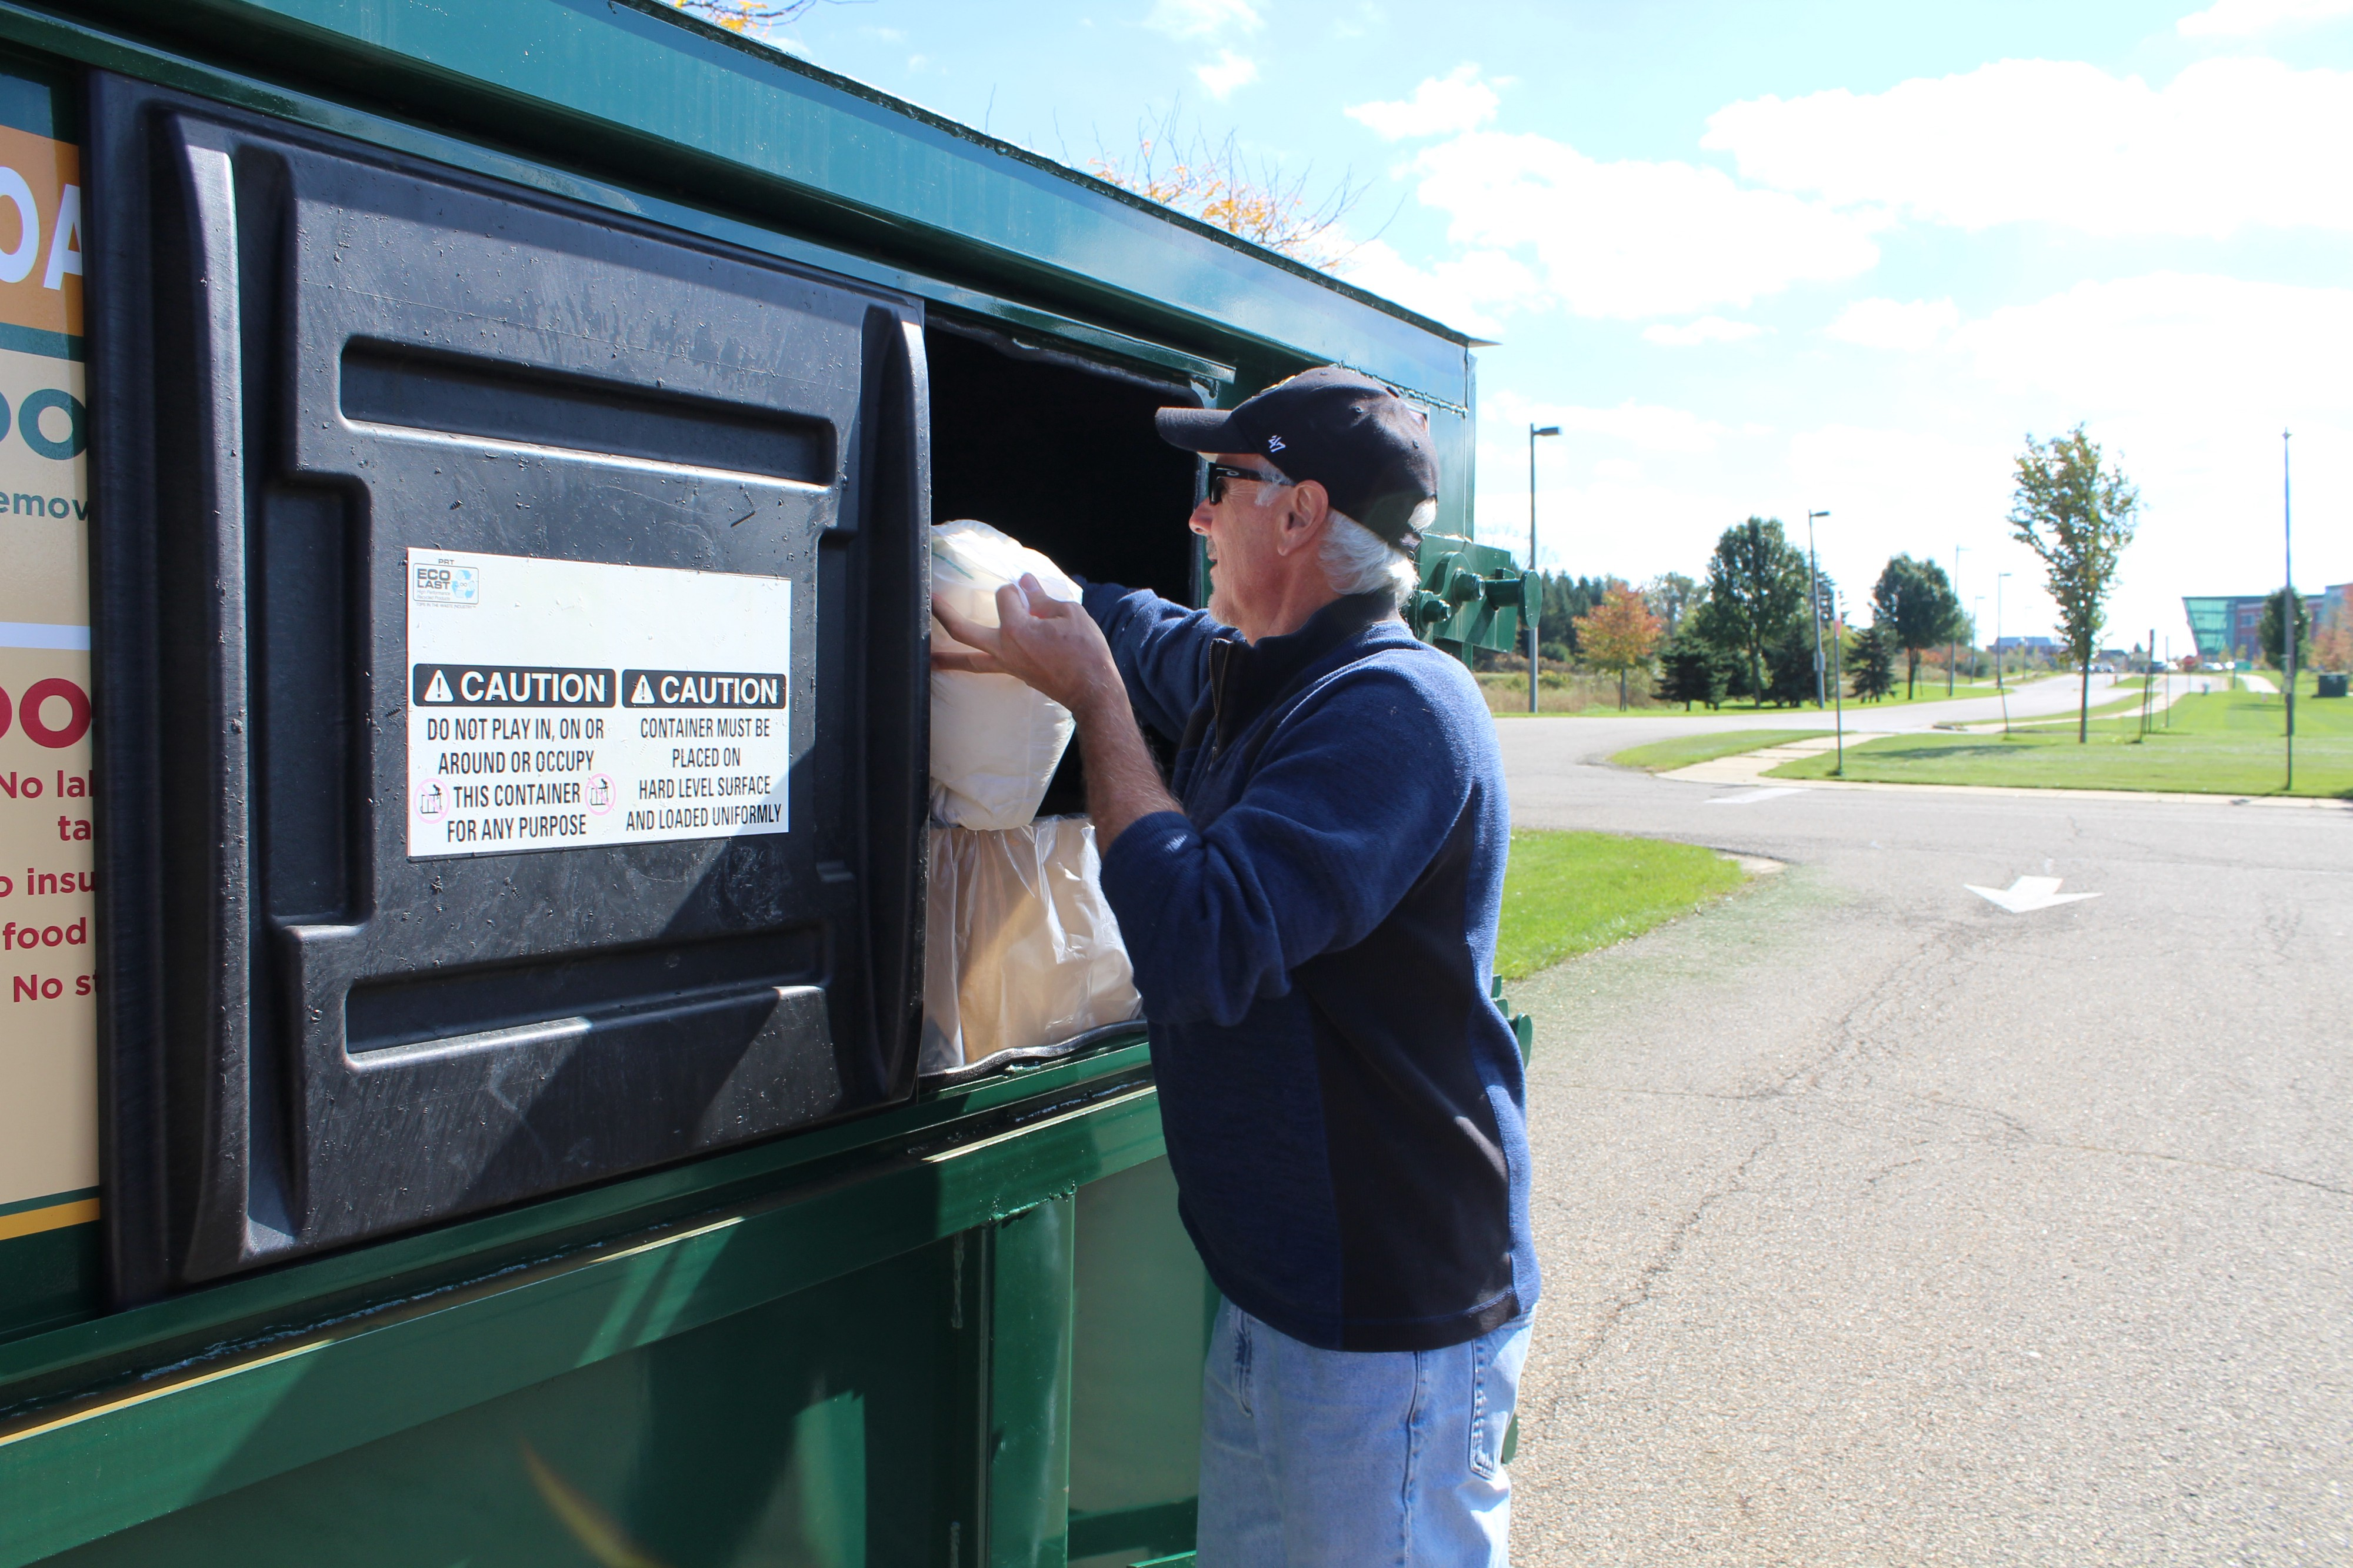 Drop-off sites aim to increase polystyrene recycling